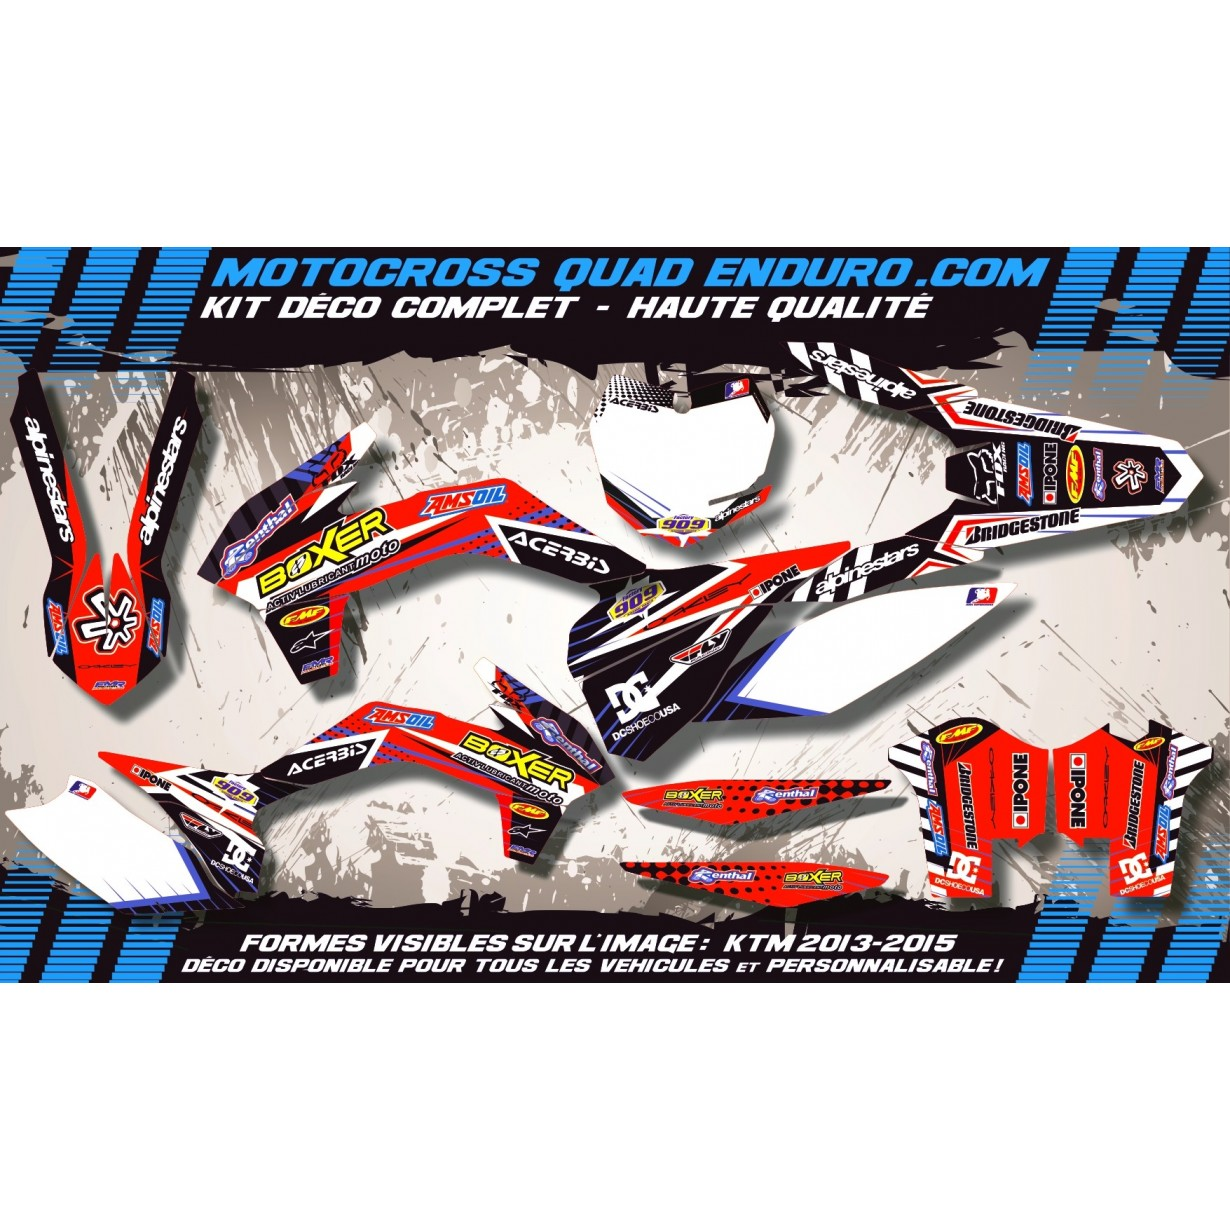 KIT DÉCO Perso 125 CR 95-97 BOXER MA1A